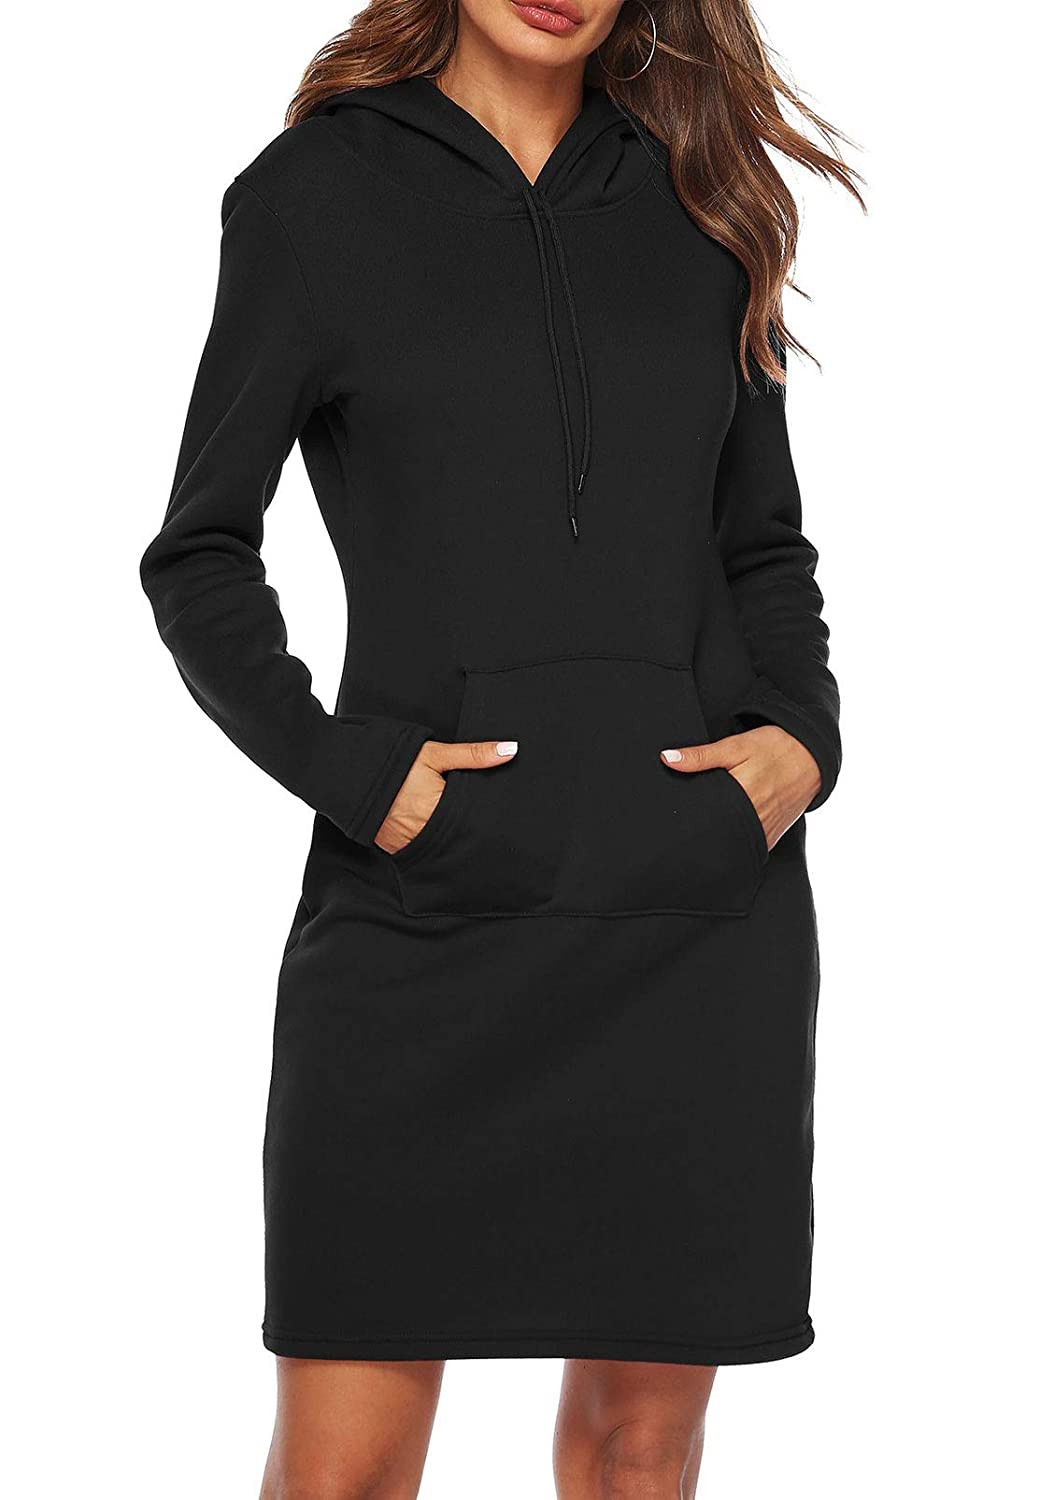 Hilization Women Long Sleeve Pocket Pullover Thicken Hooded Sweatshirt